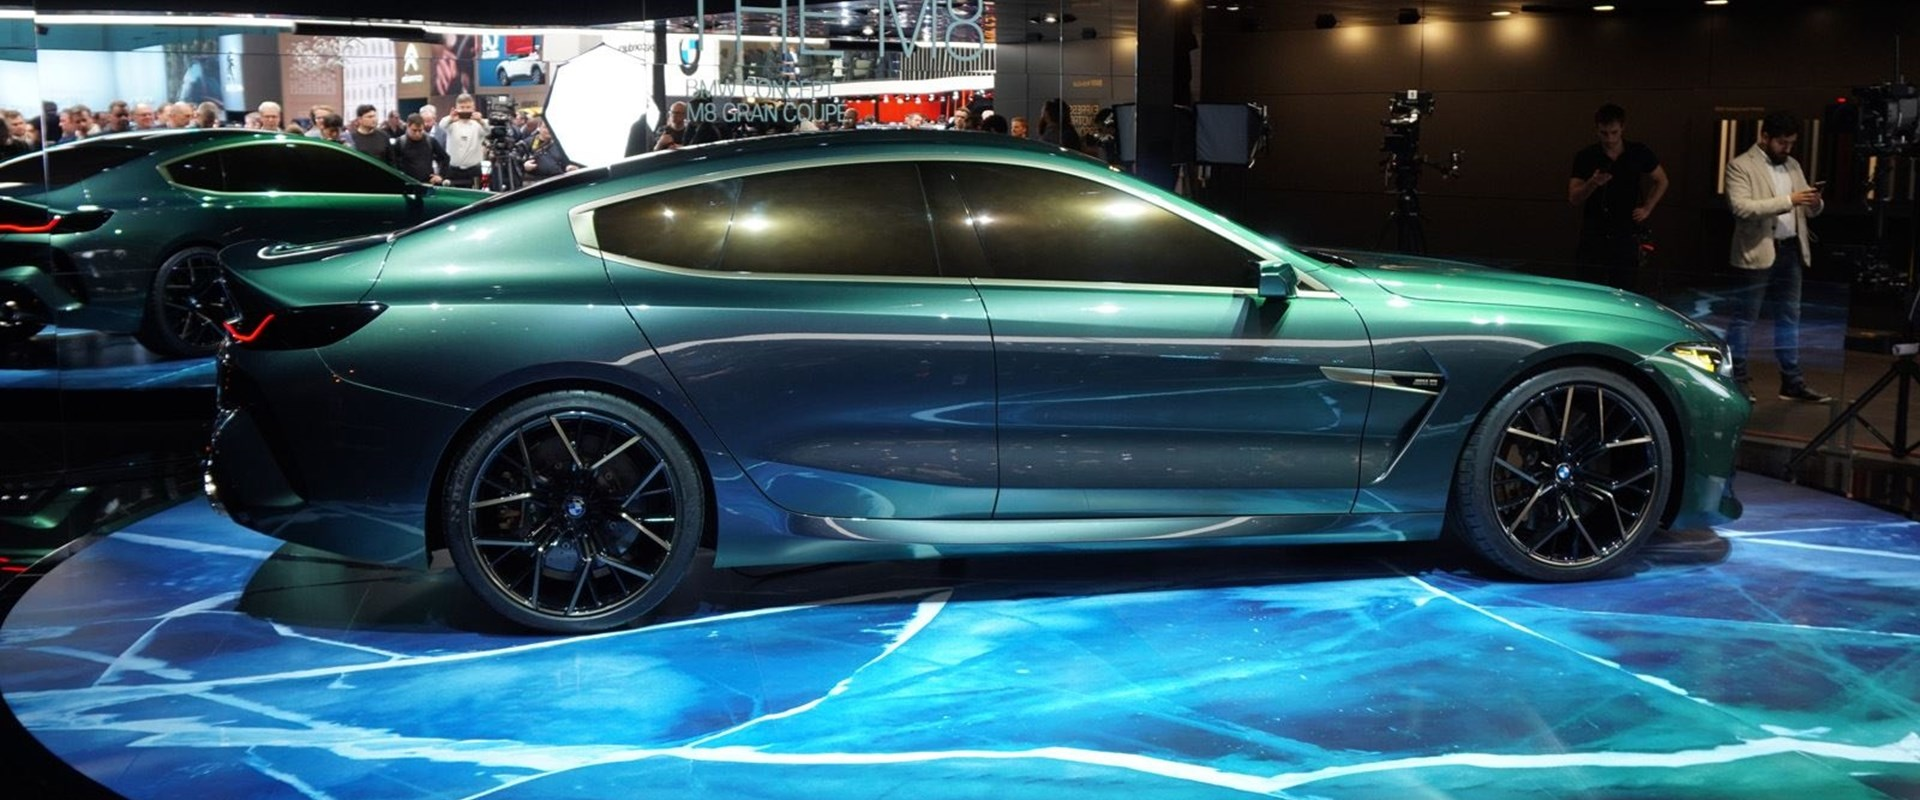 BMW Makes Us Envious With Green Concept M8 Gran Coupe   CarBuzz